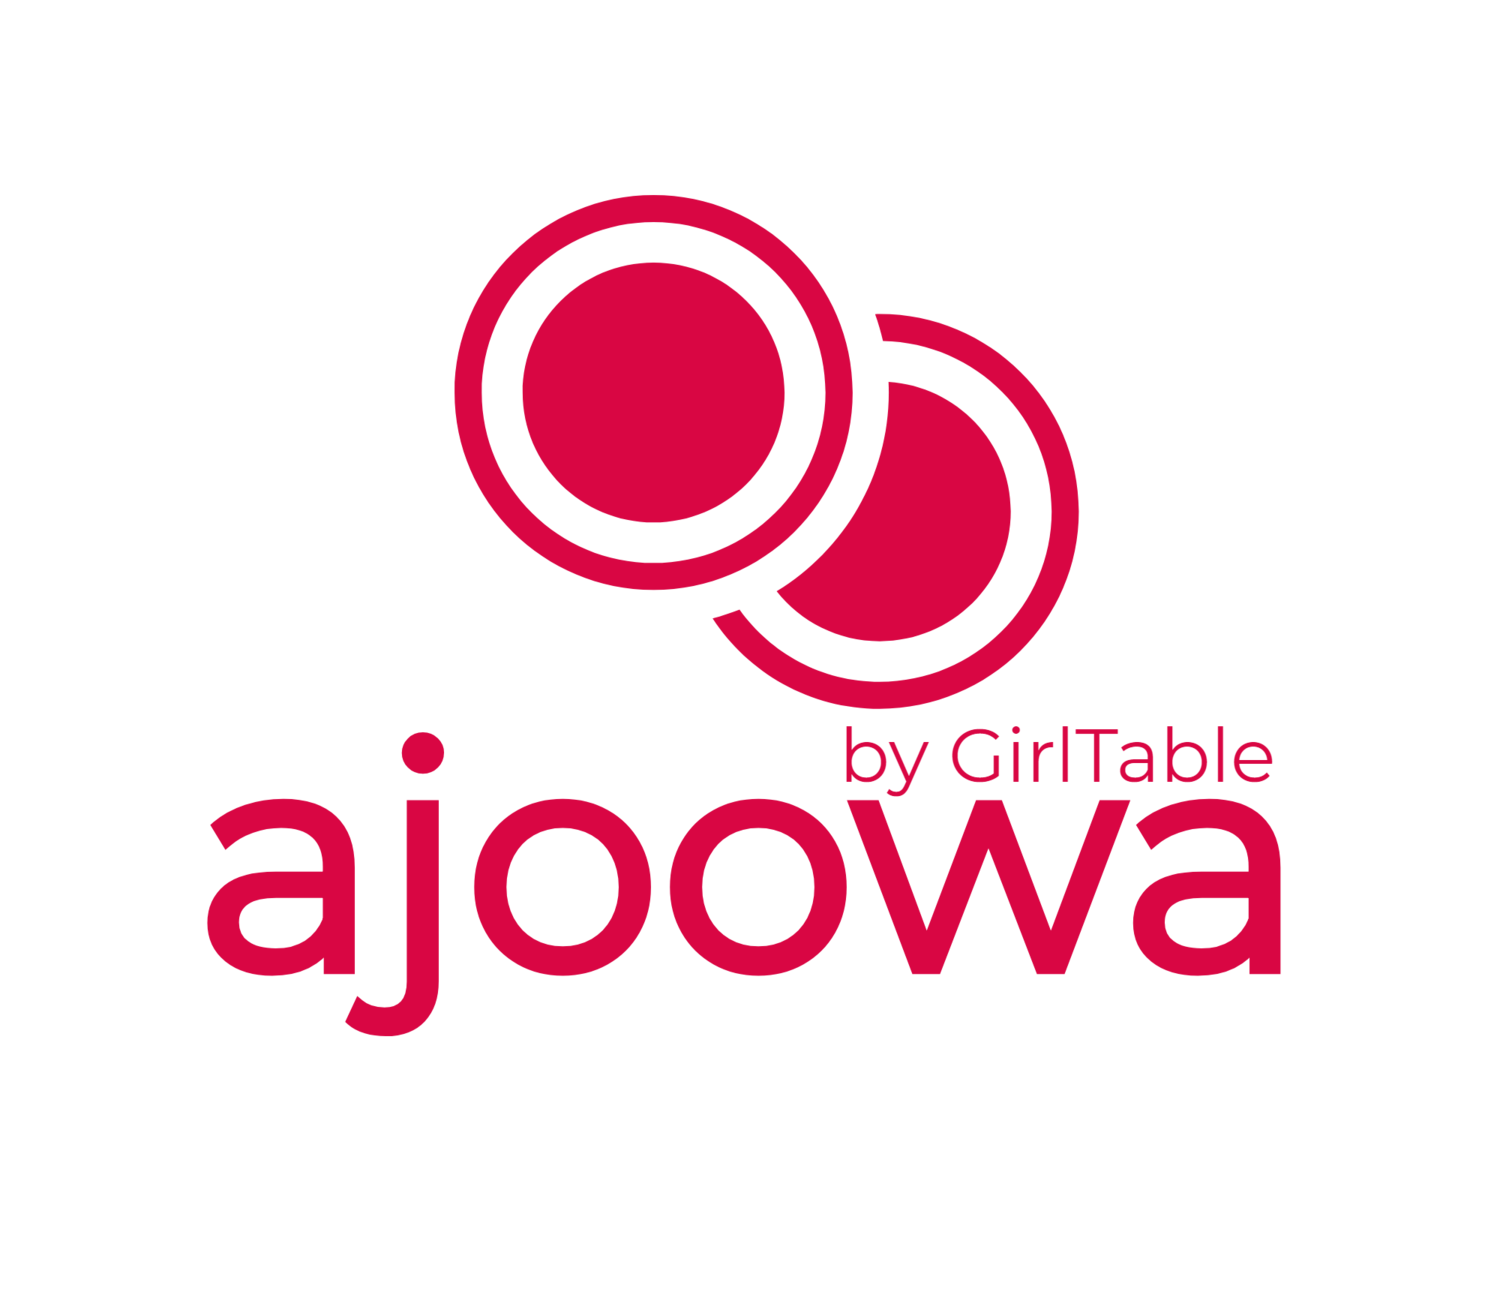 Ajoowa | By GirlTable >>> Crowdfunding for Women Everywhere